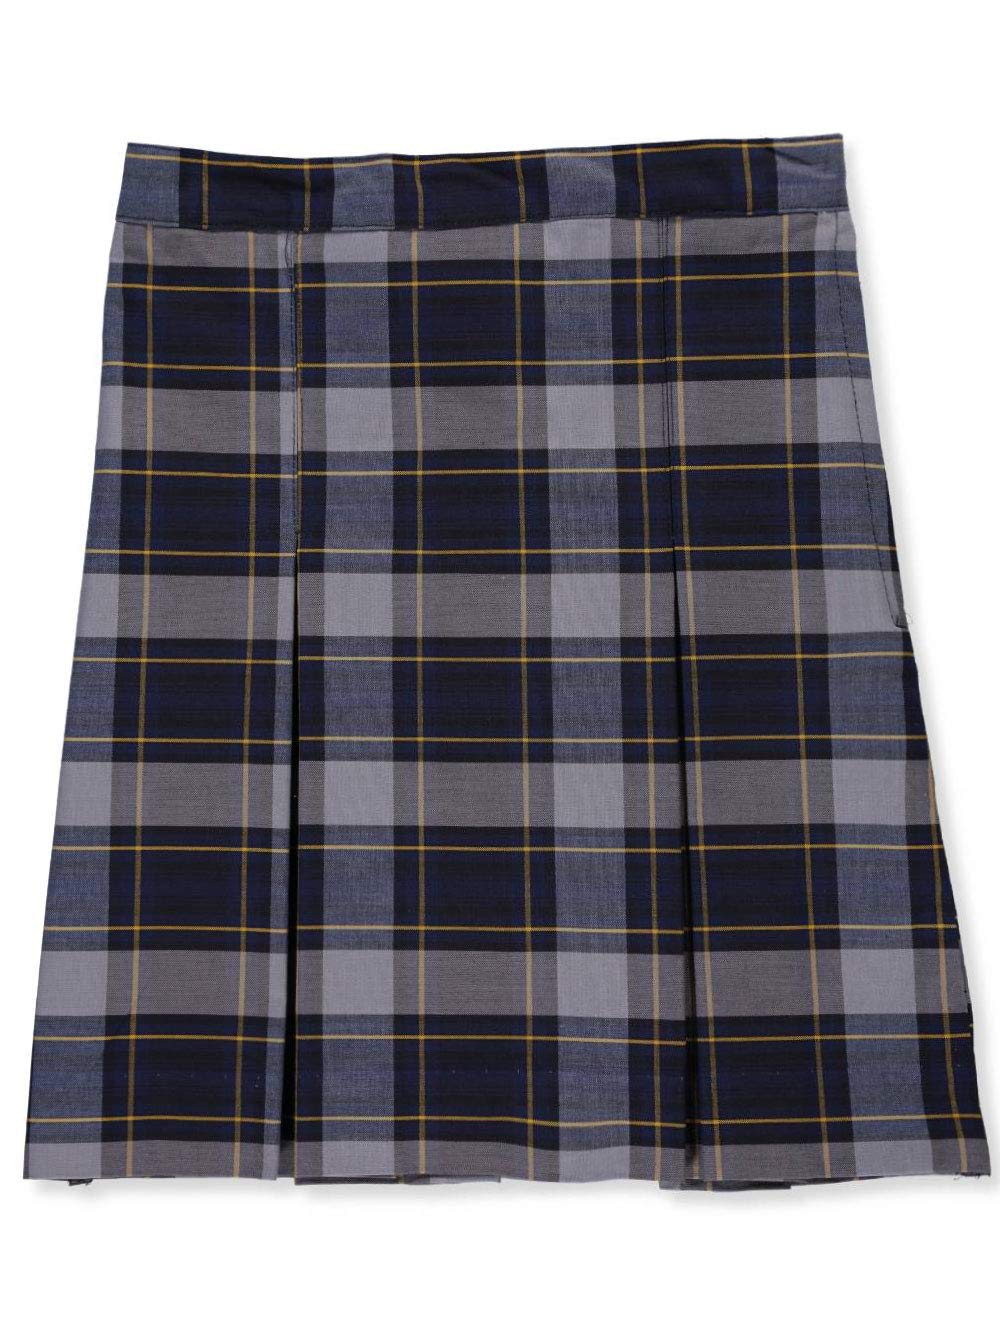 Cookie's Brand Big Girls' Box Pleat Skirt - Royal/lt. Blue/goldplaid #57, 7